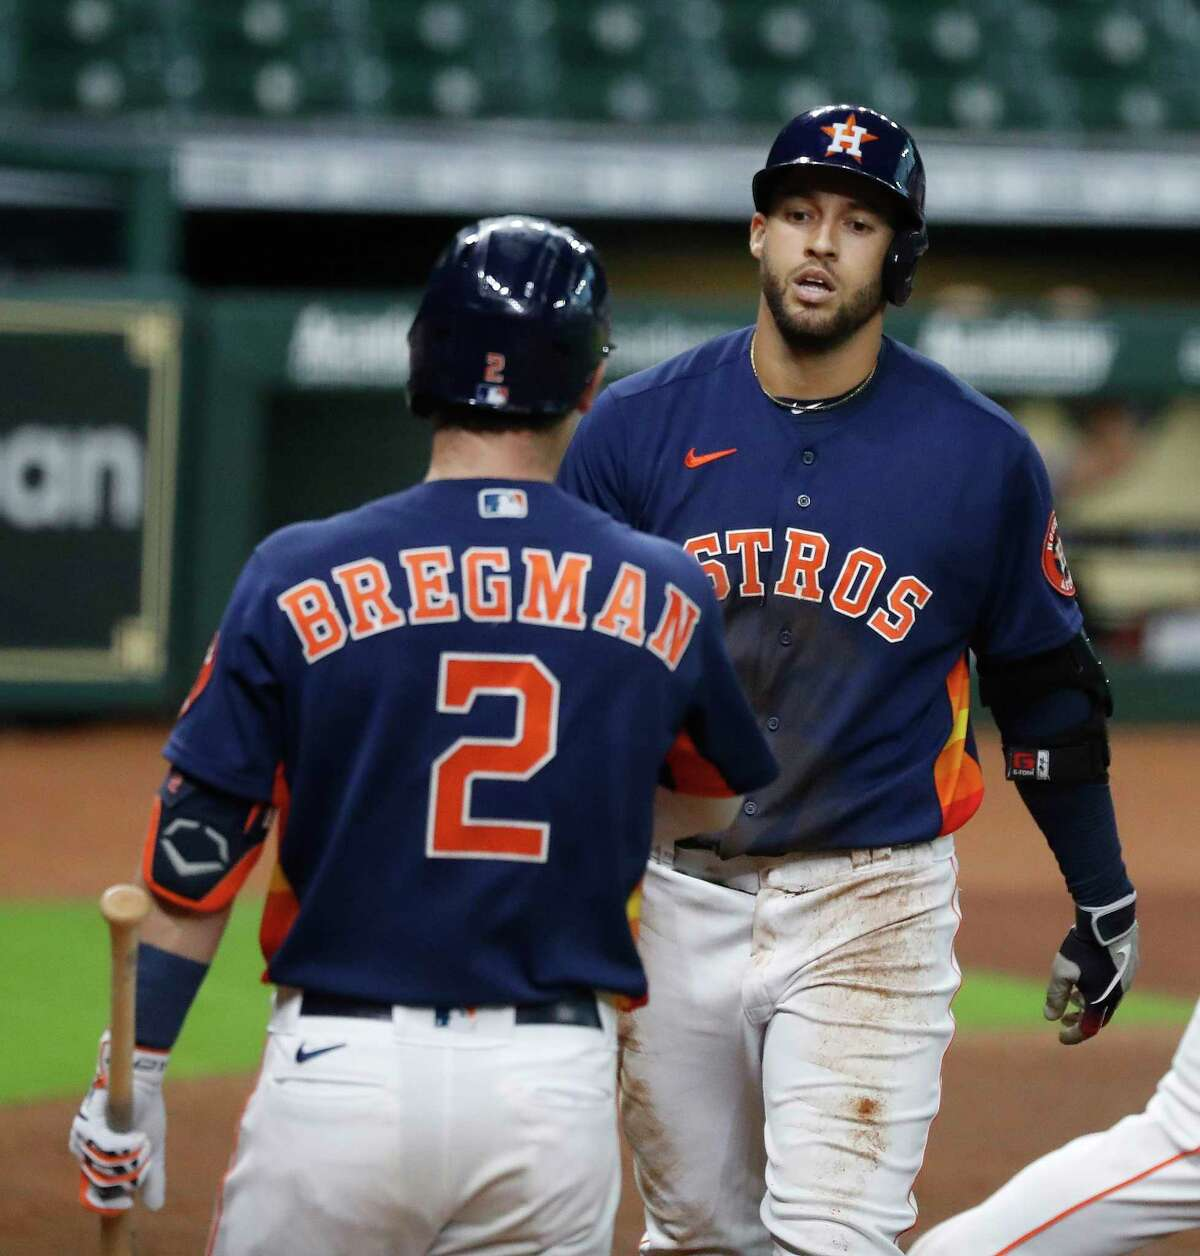 Houston Astros George Springer (4) celebrates with Alex Bregman (2) after hitting an inside-the-park home run on a fly ball to center field during the sixth inning of an MLB baseball game at Minute Maid Park, Sunday, September 20, 2020, in Houston.